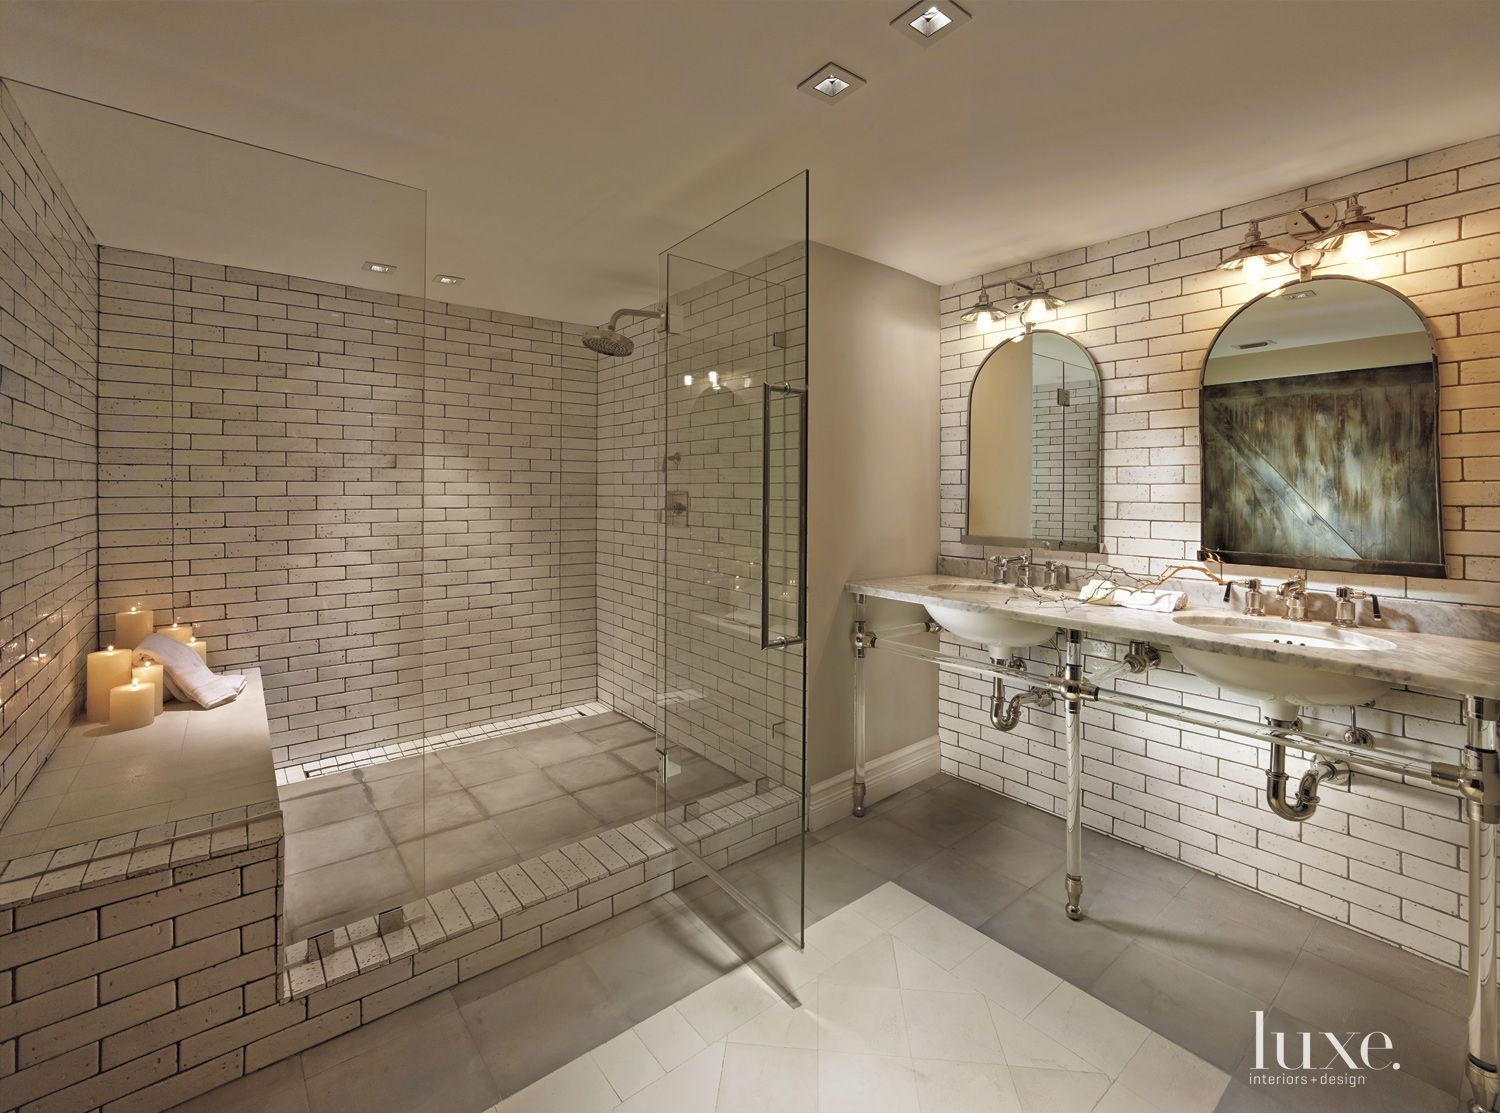 Eclectic White Bathroom with Brick-Inspired Tile